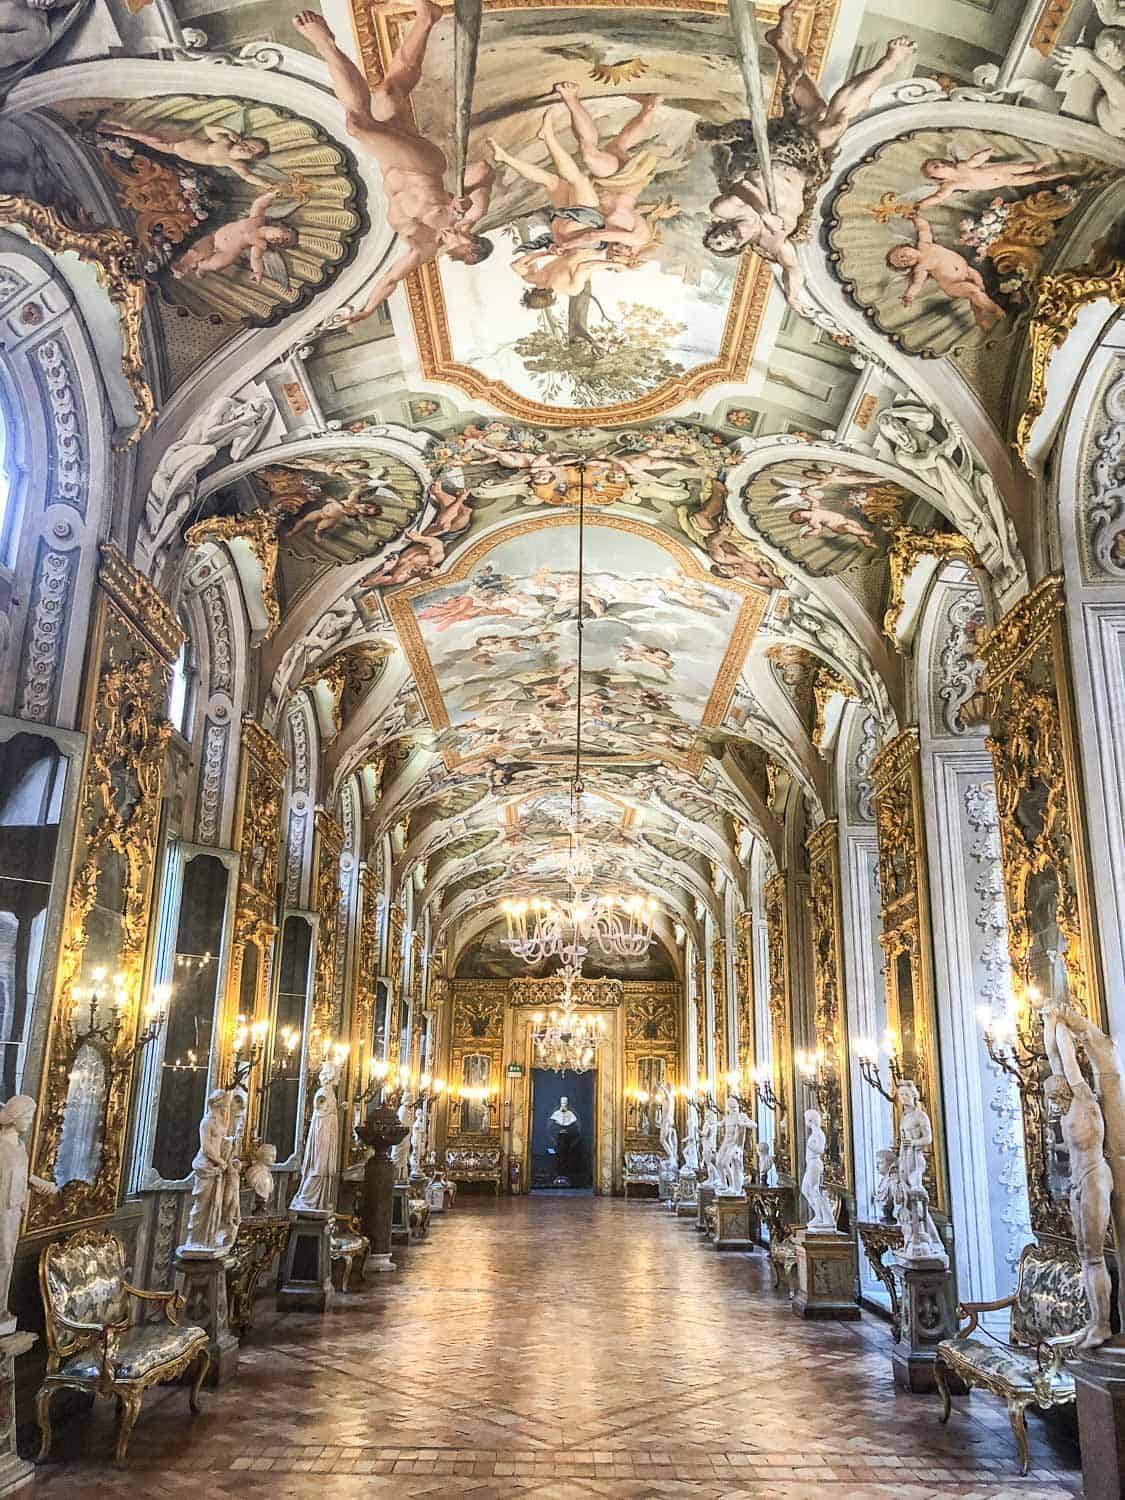 Gallery of Mirrors at Palazzo Doria Pamphilj, one of the best unusual things to do in Rome